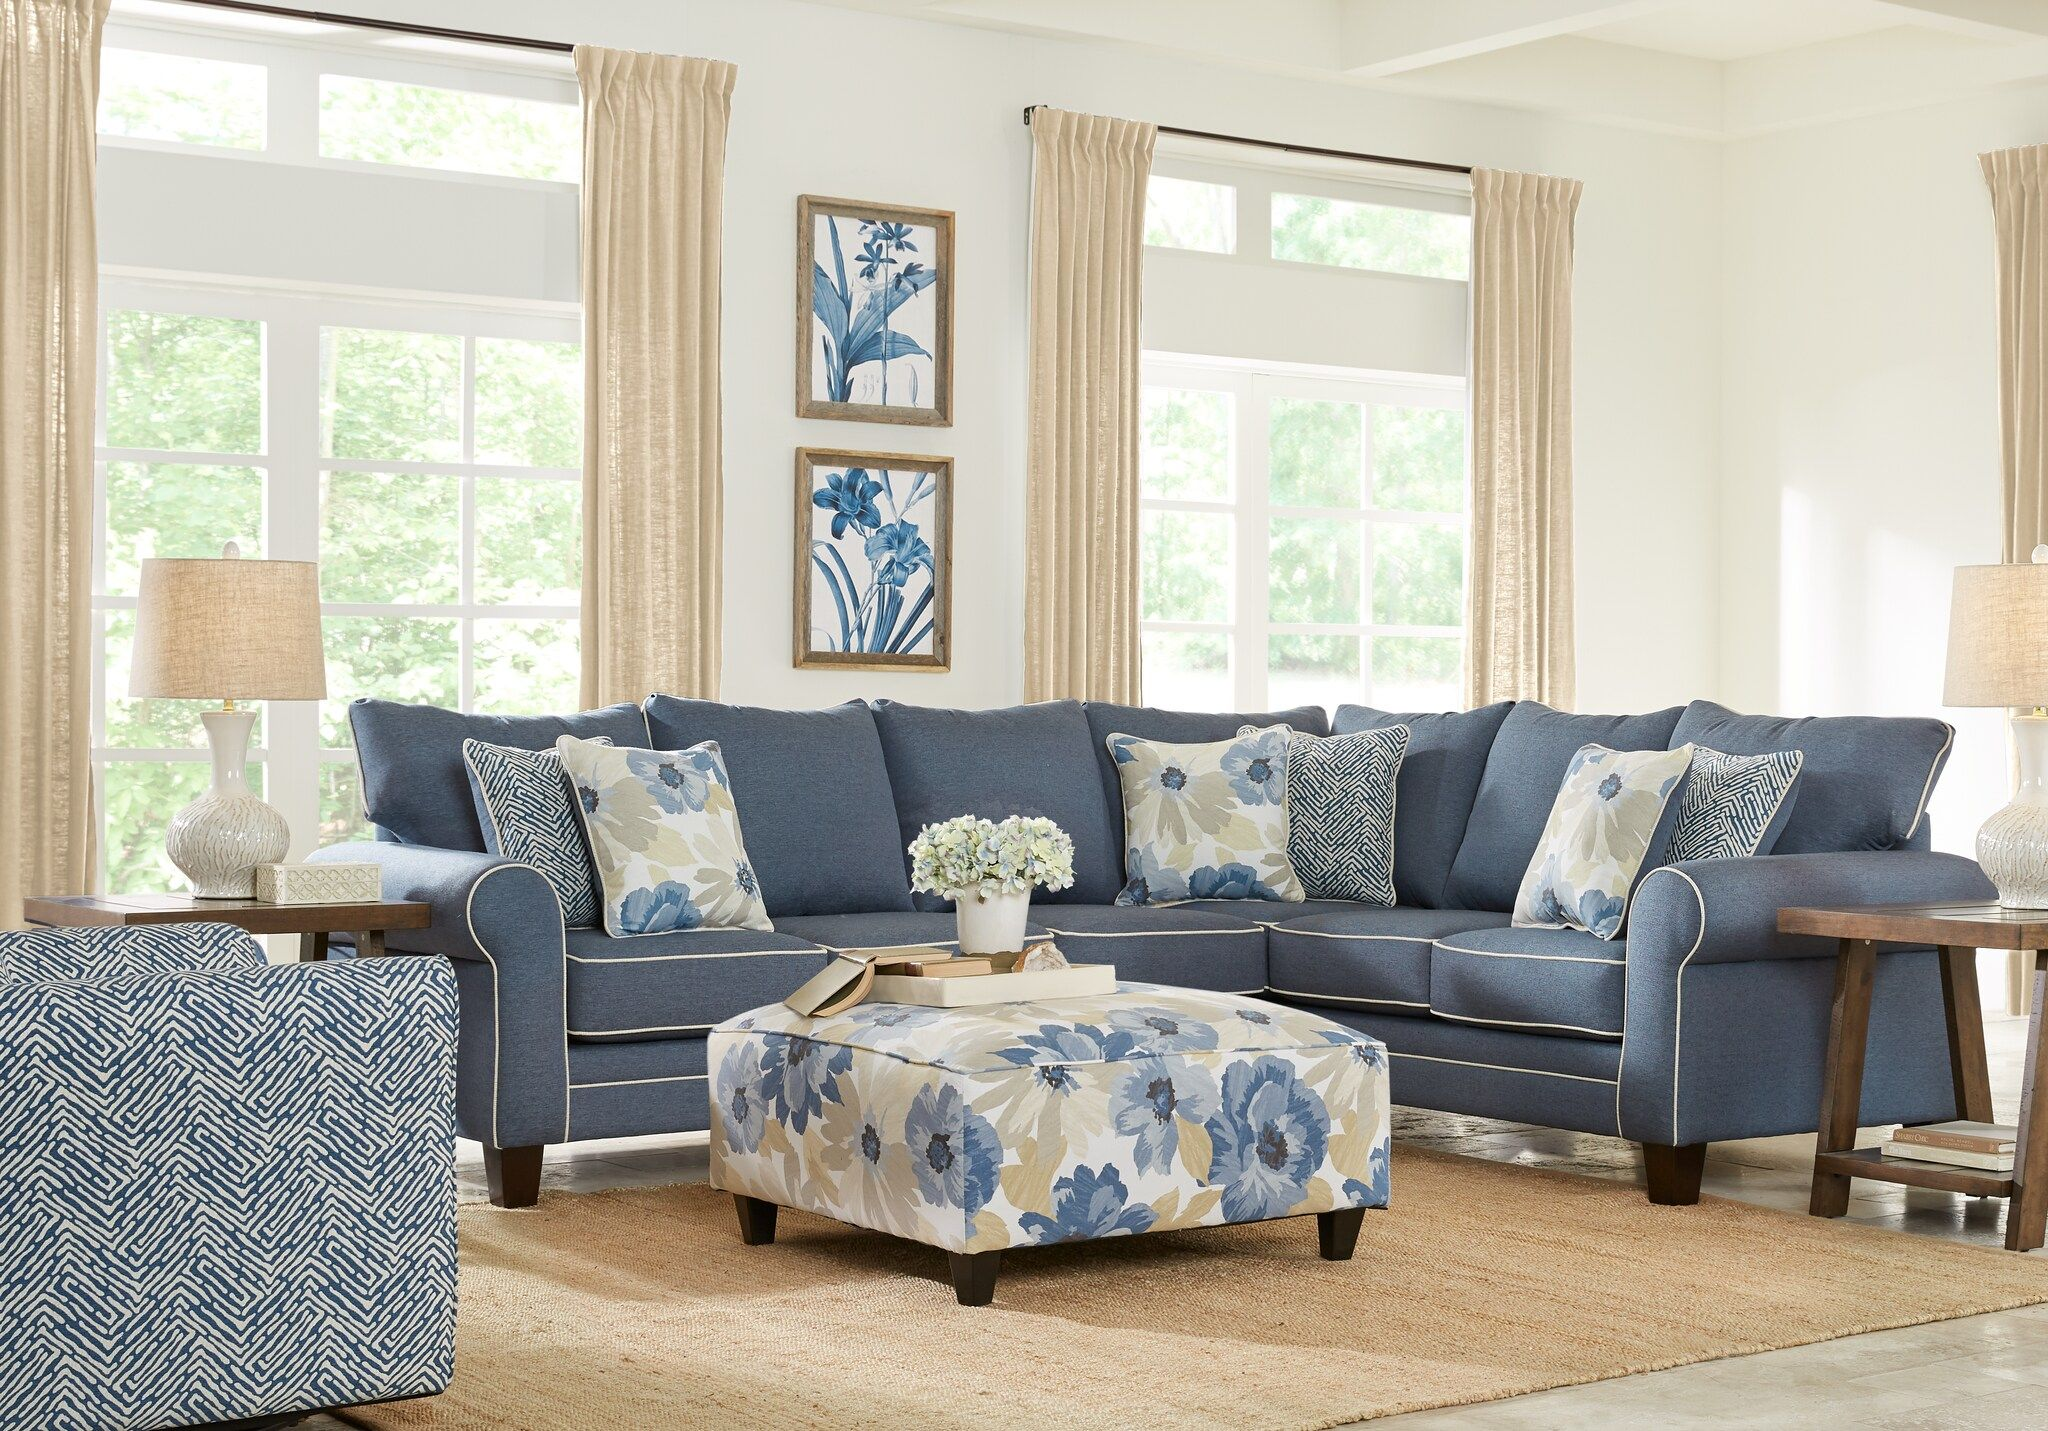 Light Blue Sofa Living Room Google Search Blue Living Room Living Room Sets Furniture Living Room Sets